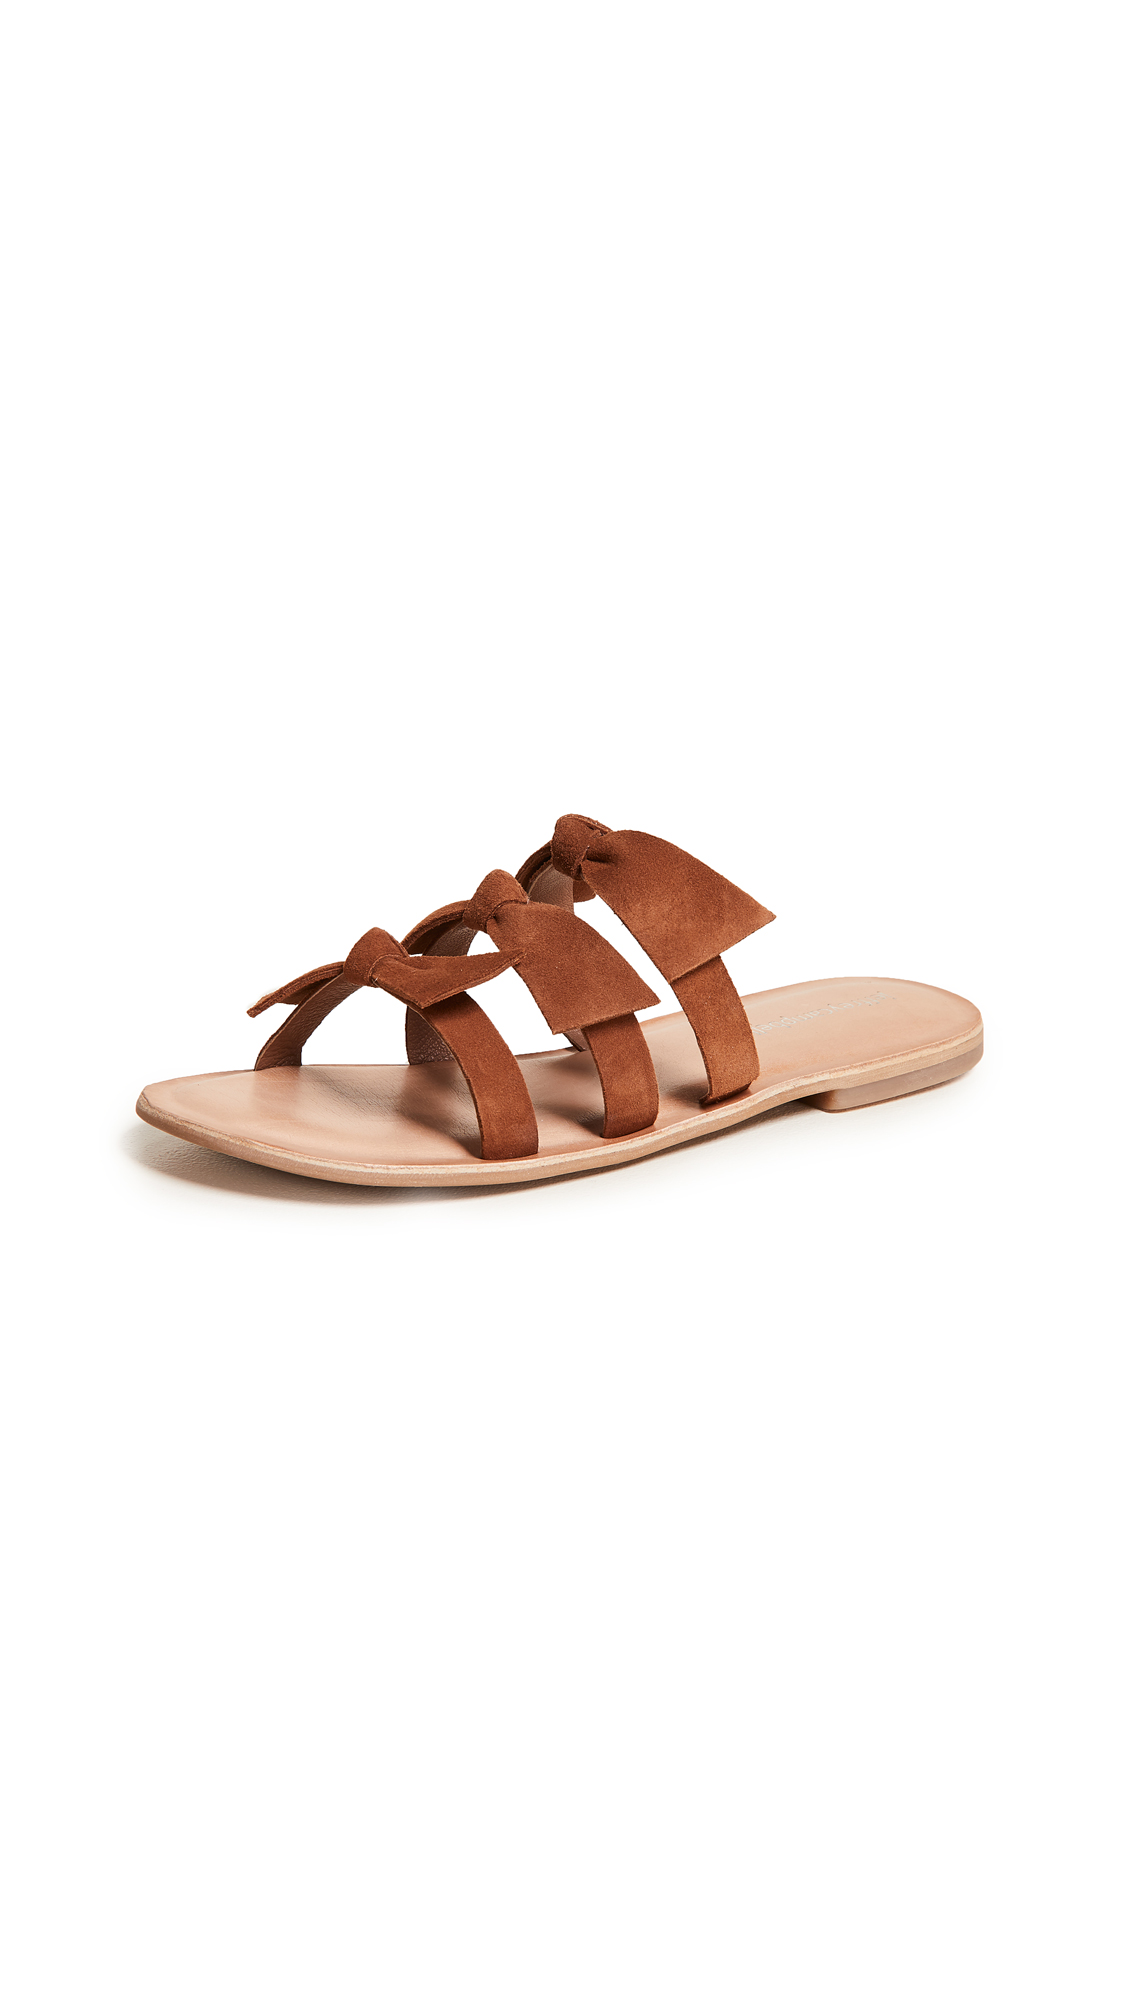 Jeffrey Campbell Atone Bow Sandals - Tan